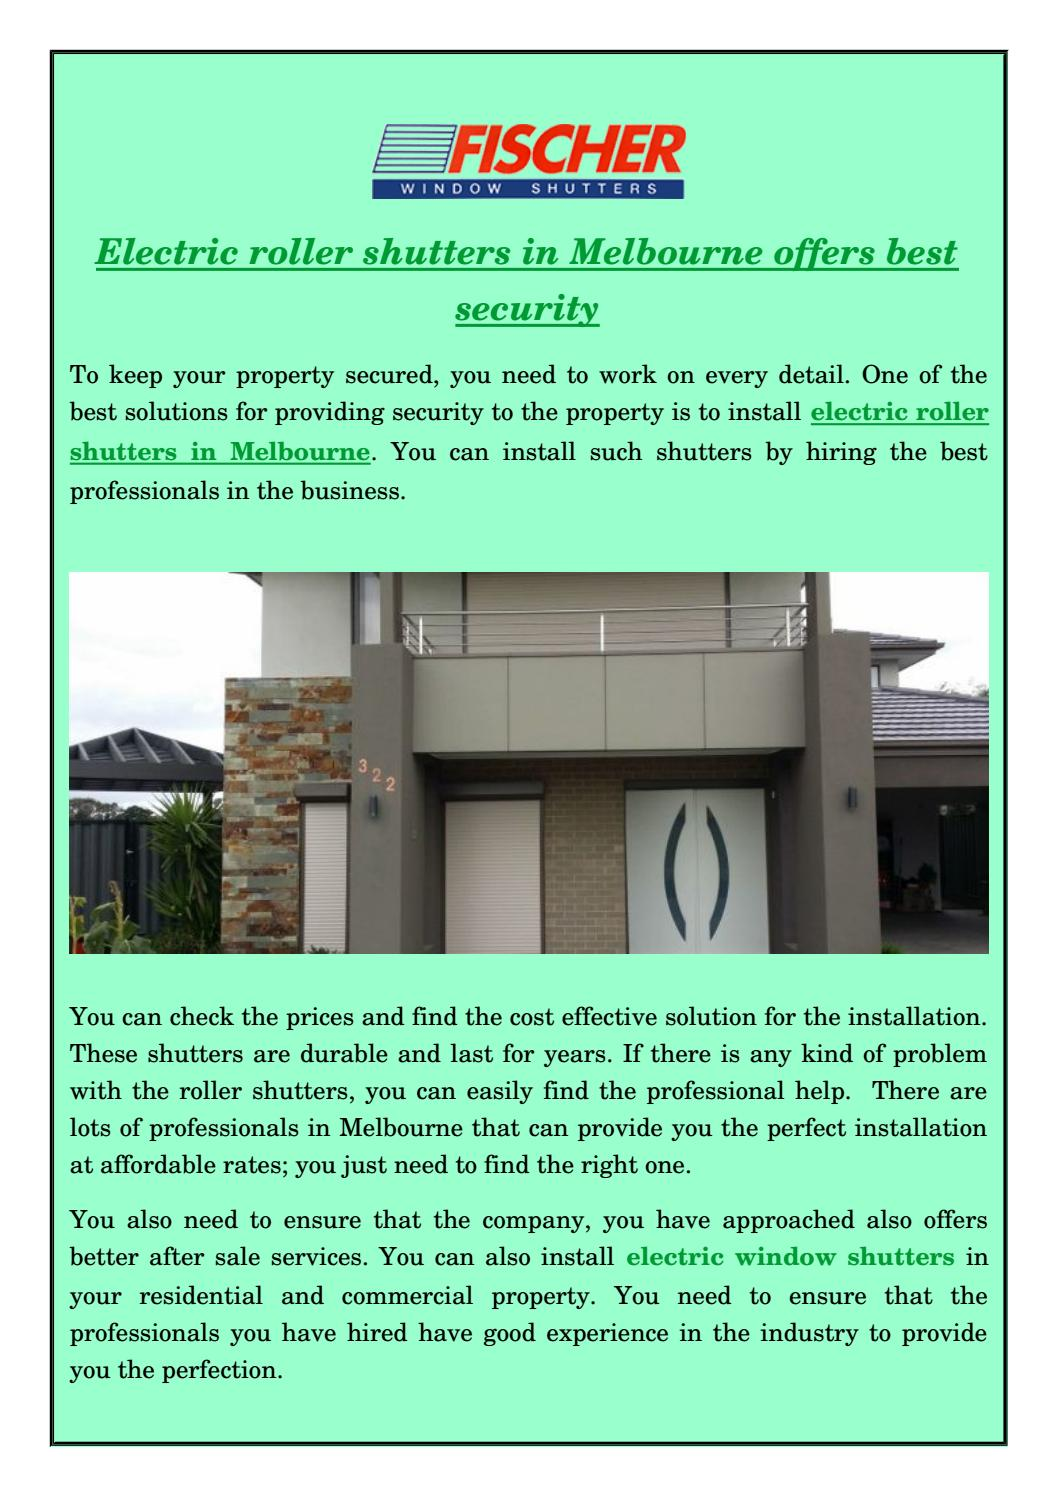 Electric Roller Shutters In Melbourne Offers Best Security By Ficher Residential Windows Jhon Issuu